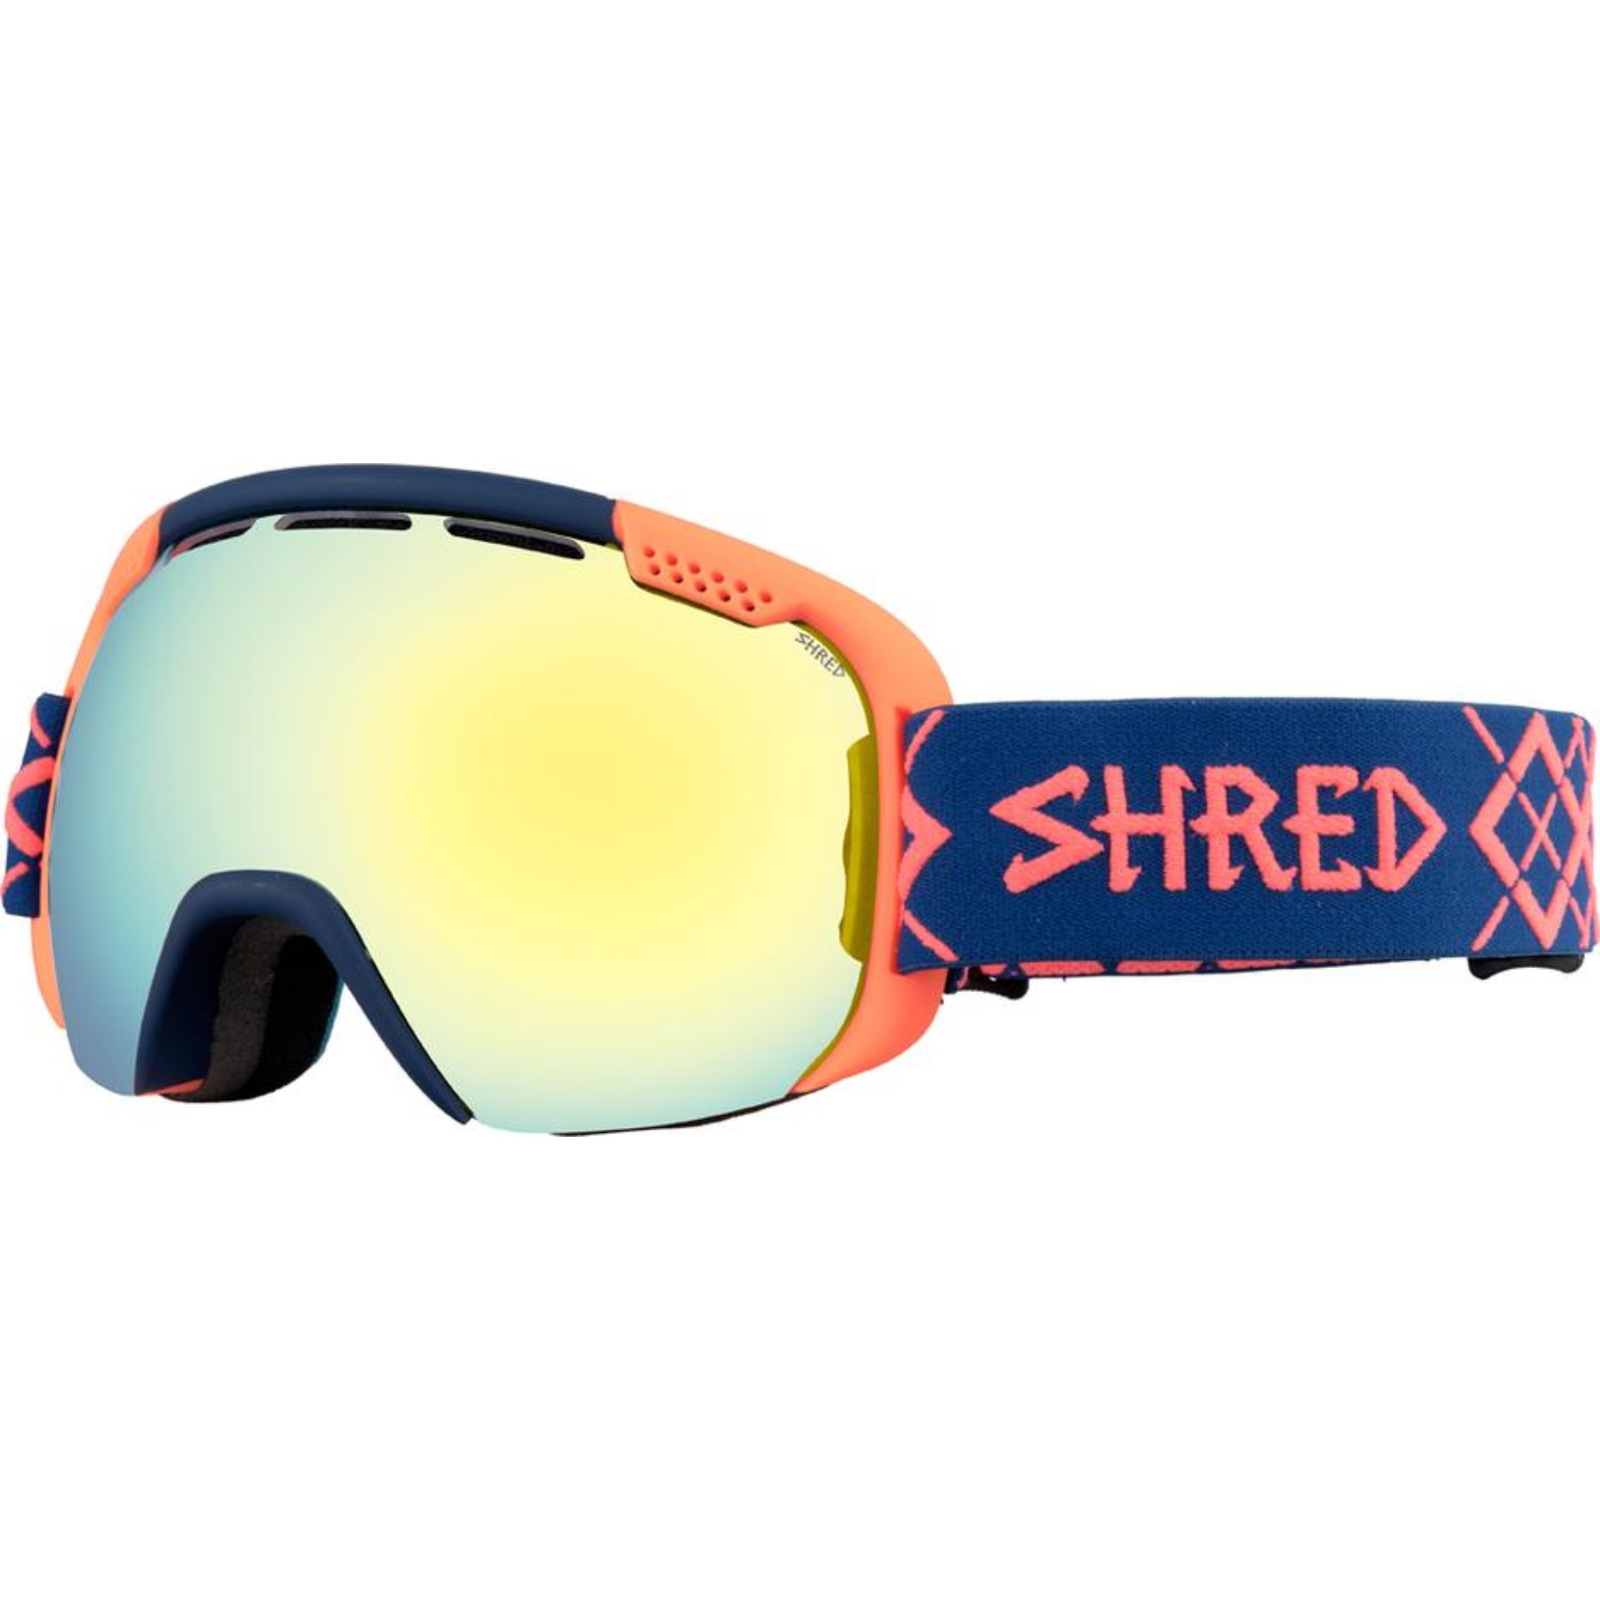 ShROT Smartefy Goggles - Bigshow Navy/Rust